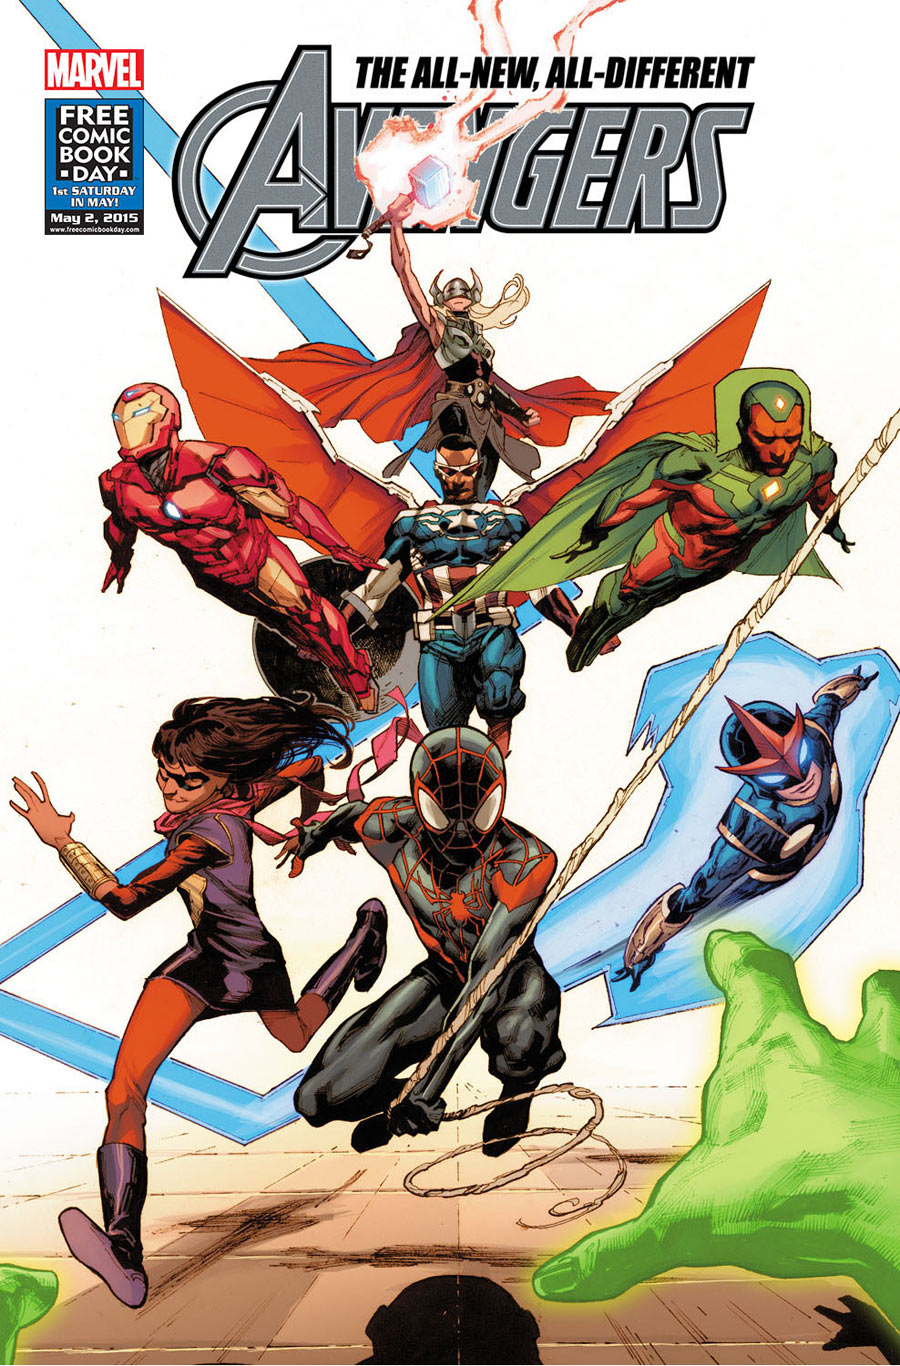 FCBD All New, All Different Avengers